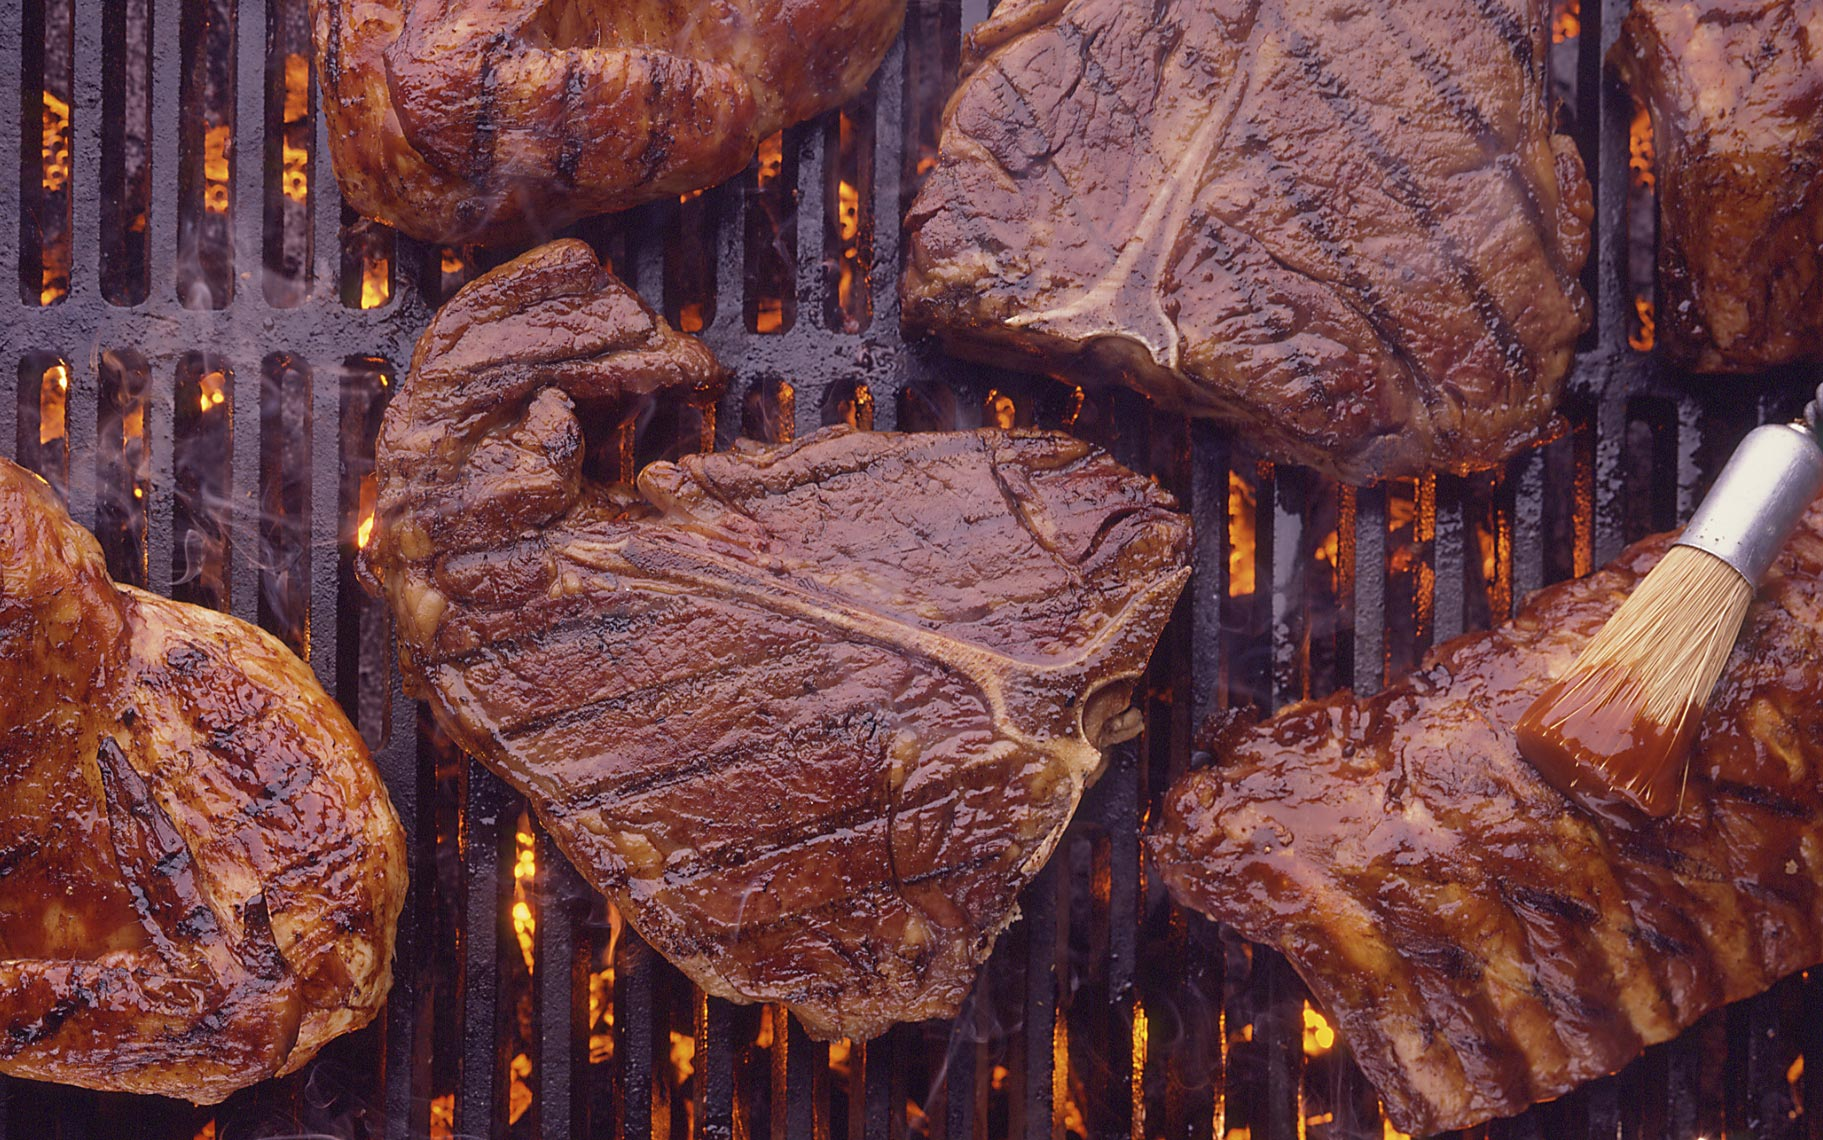 A391---Steaks-on-Grill